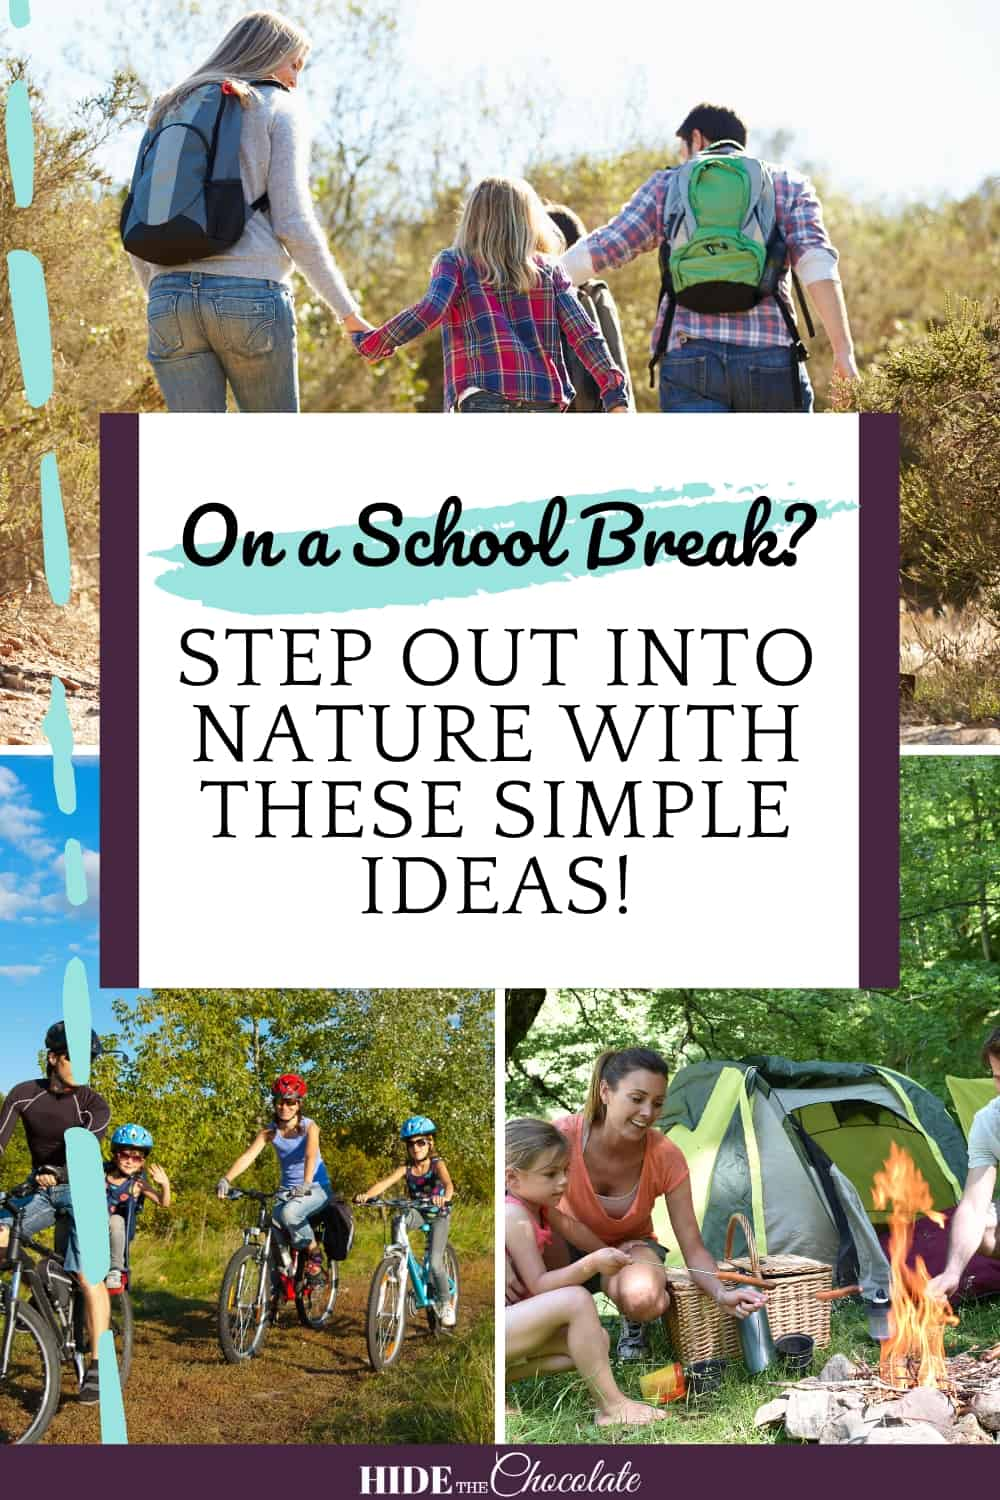 On a School Break? Step Out Into Nature With These Simple Ideas!